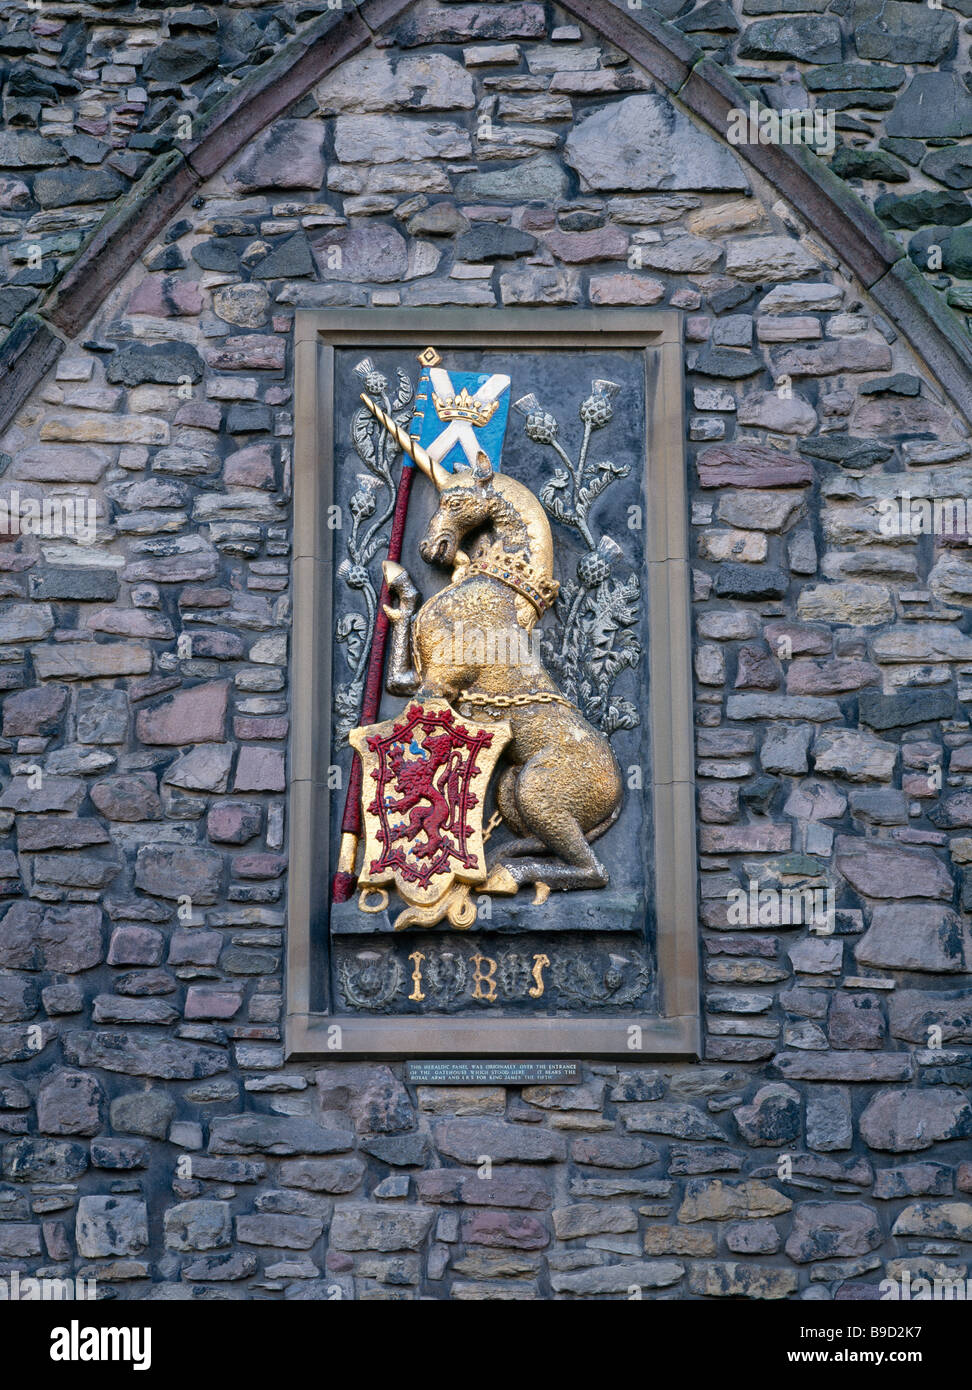 Heraldry in Abbey Strand, Holyrood Palace, Edinburgh, Scotland, UK. It bears the Royal Arms and I R 5 for King James - Stock Image